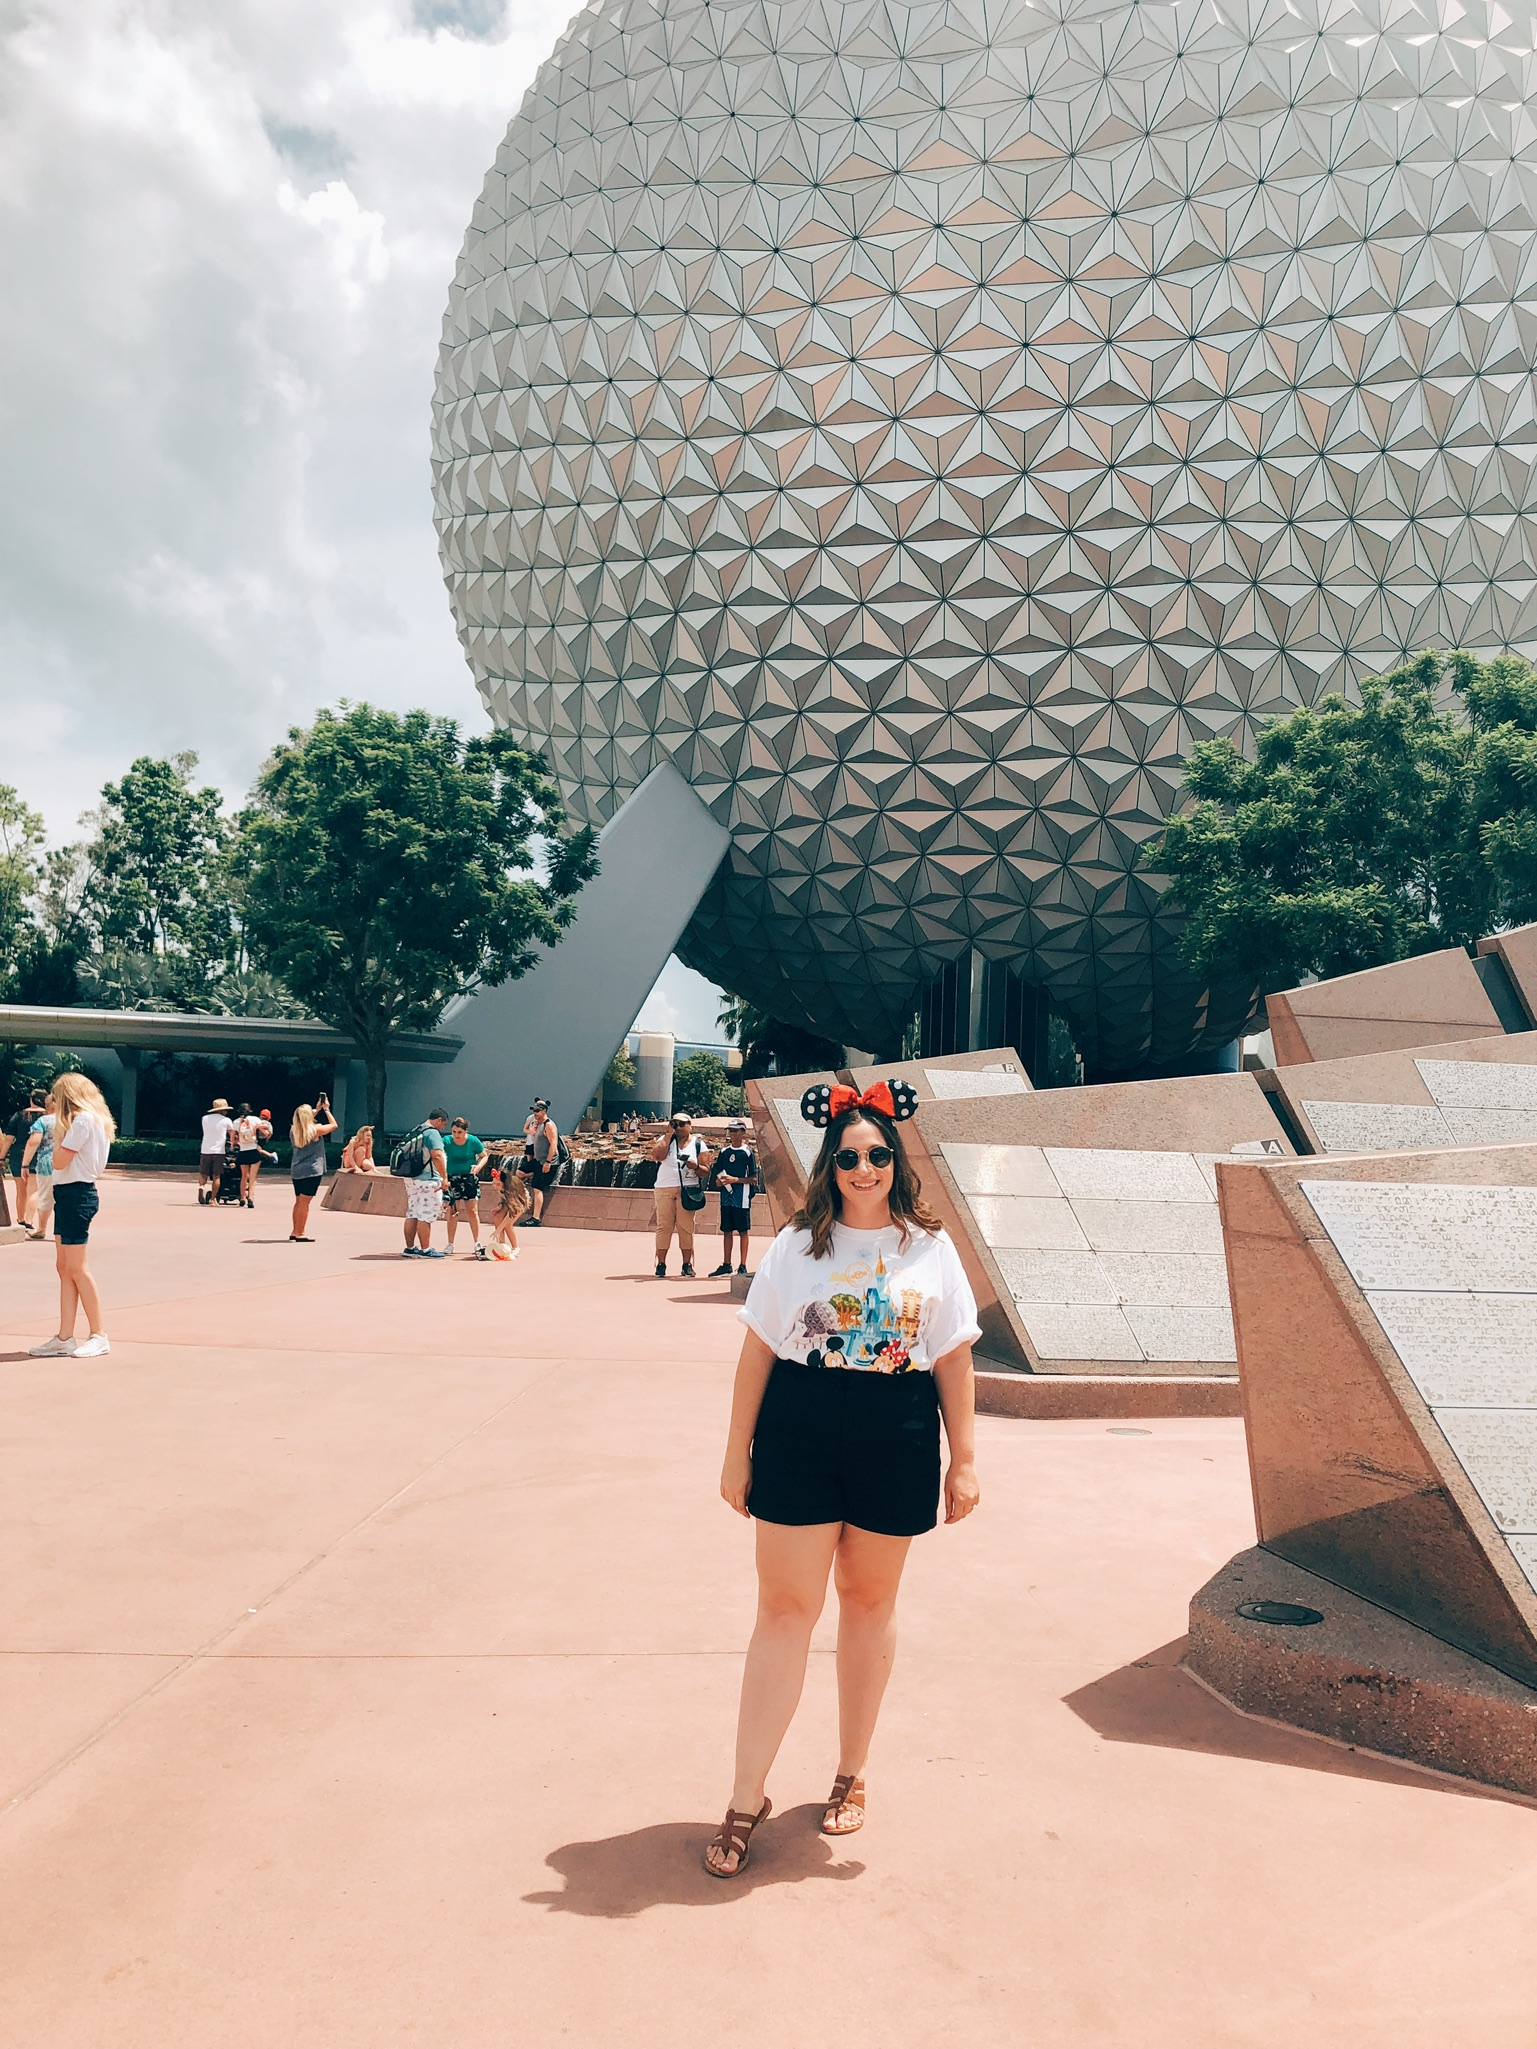 5 Things to Do at Epcot as an Adult